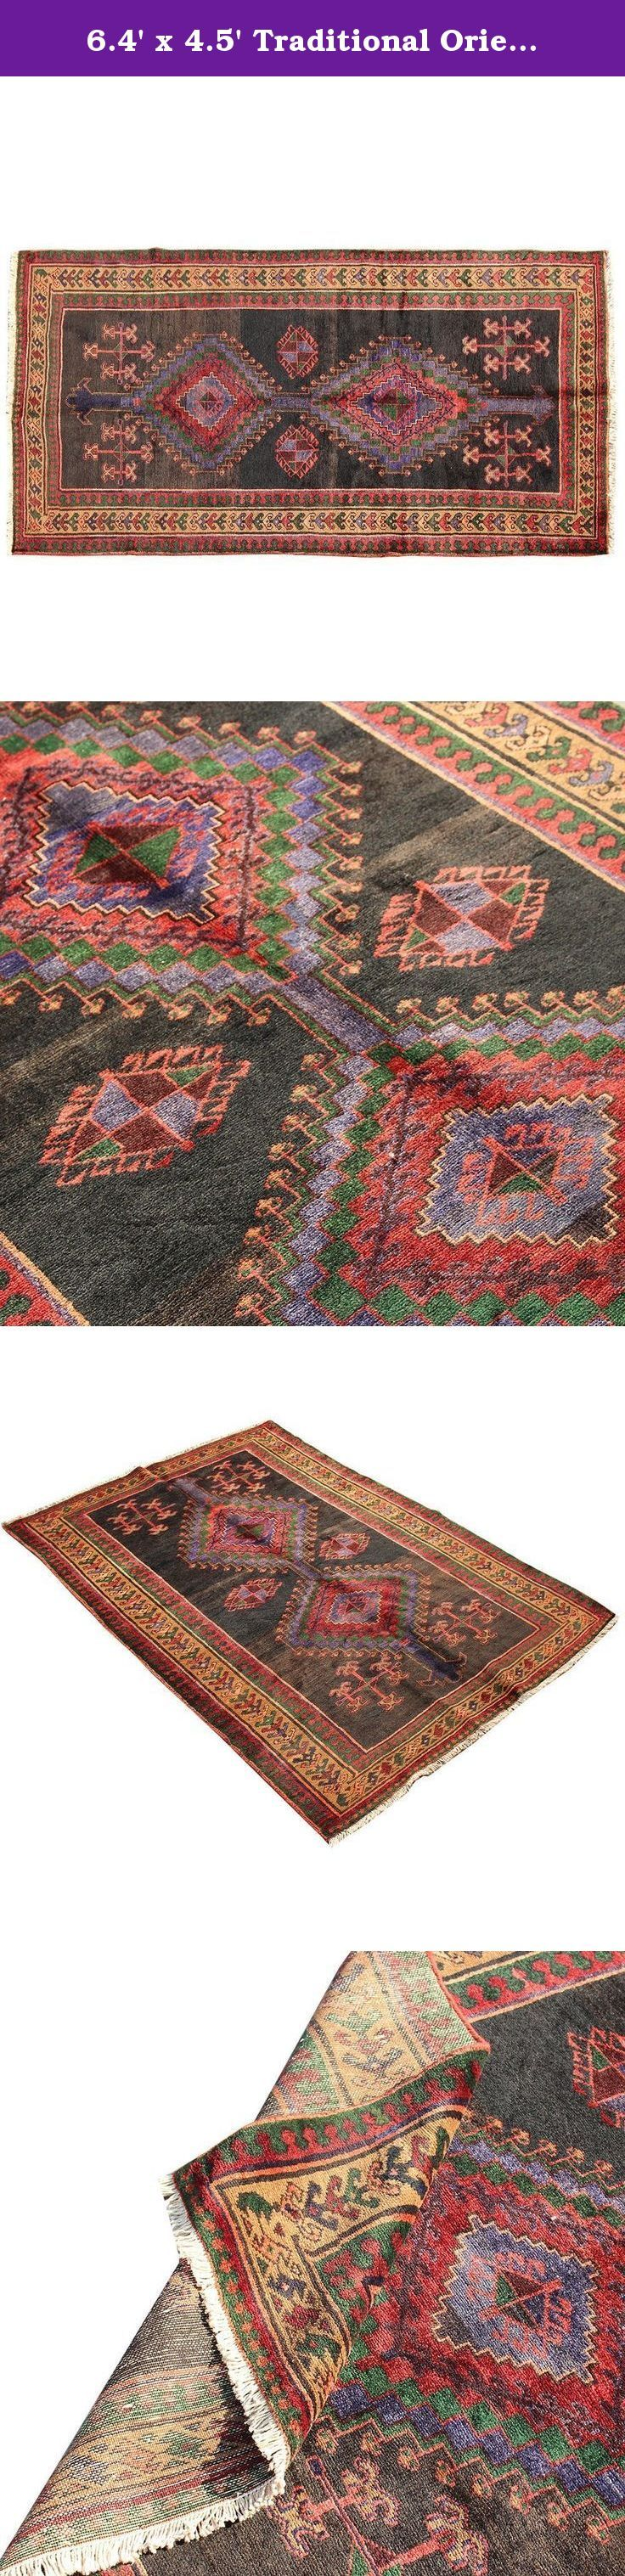 6.4' x 4.5' Traditional Oriental Area Rug, Floor Classy Carpet, Classical Fancy Handmade Rug, Red Turkish Rug.Code R0101669. Hand woven rug which comes from pure lamb wool sheared at the Beginning of spring and a mixture of organic colors. It would brighten up your place with its Brown and Black color. need to need to mention being free of any chemical colors. Size: 6.4' x 4.5' Weight: 27 LB Product's code: R0101669 As an advantages of years of being in this business our price is lower in...